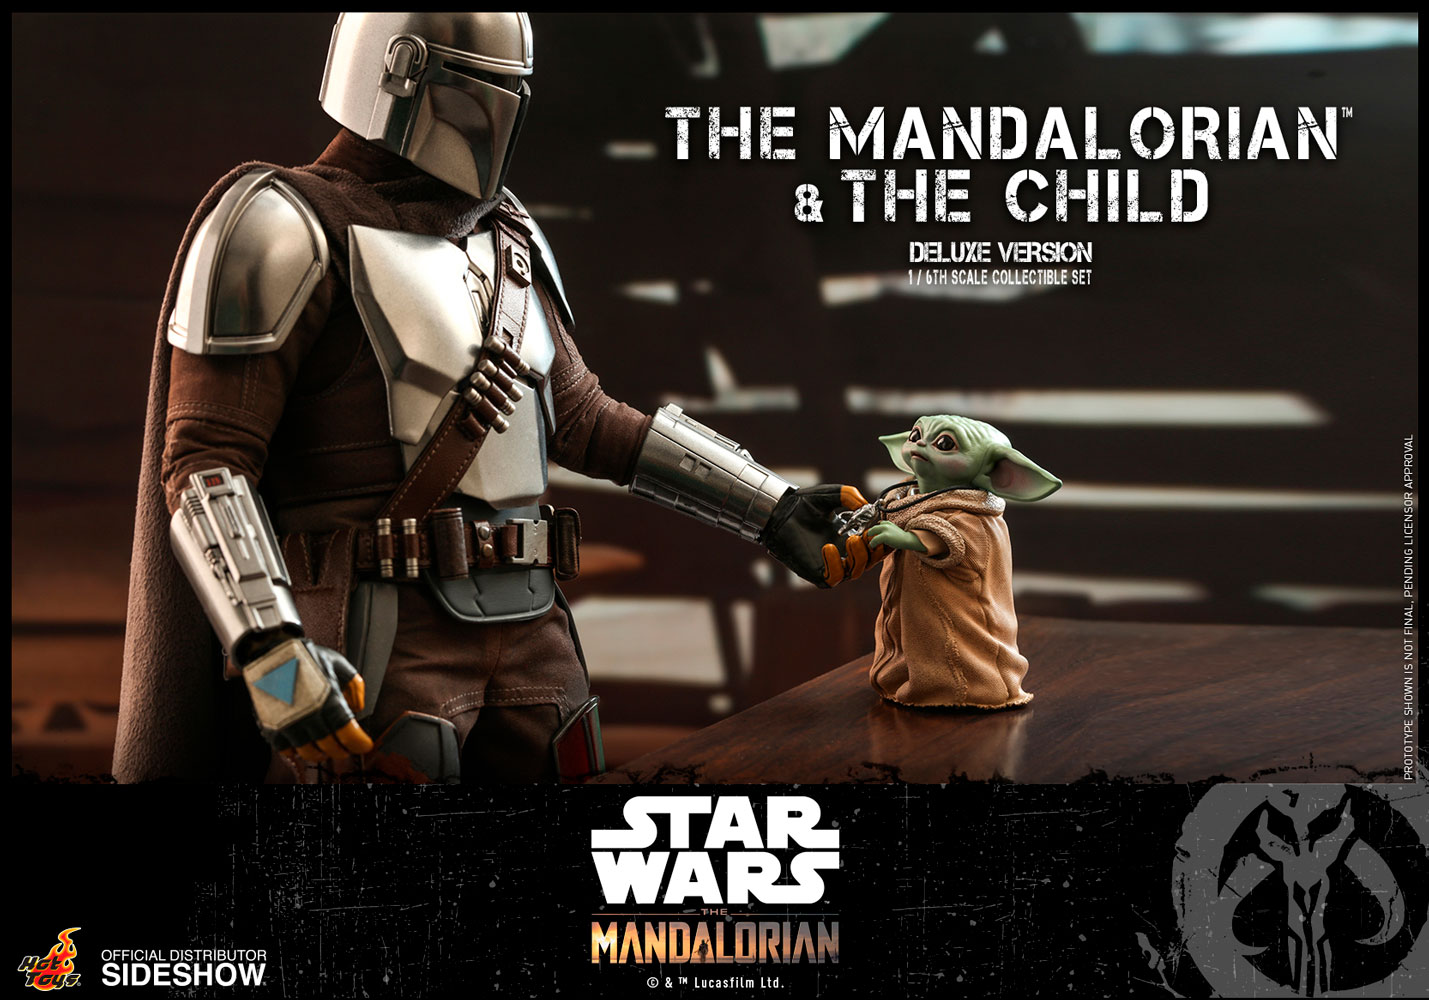 the-mandalorian-and-the-child-deluxe_star-wars_gallery